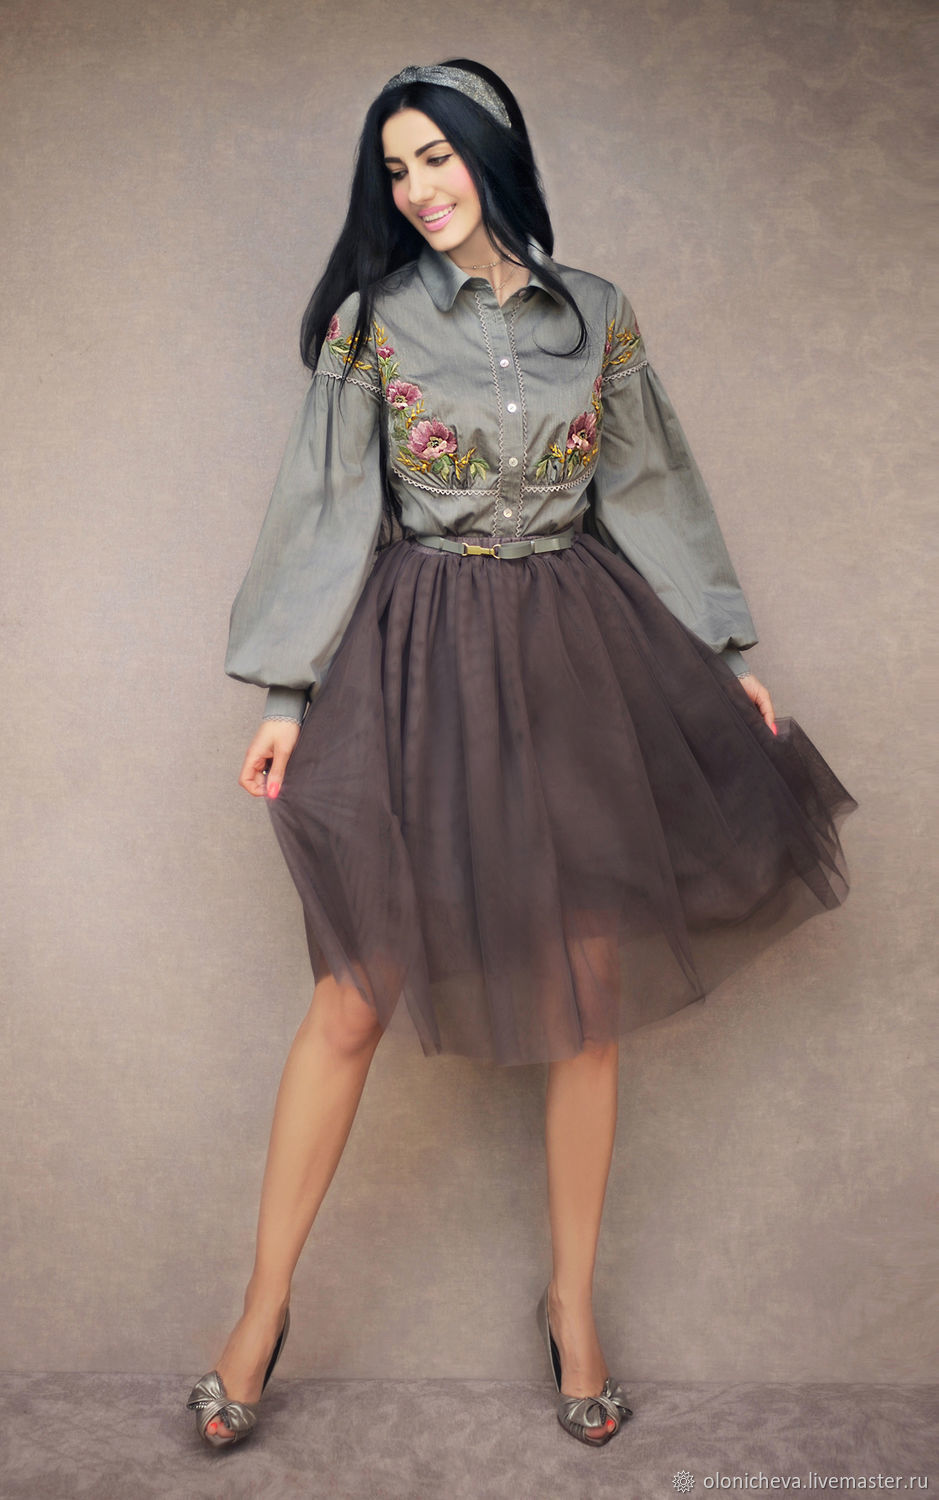 Costume with skirt 'Smoky evening' embroidered blouse, Suits, Vinnitsa,  Фото №1